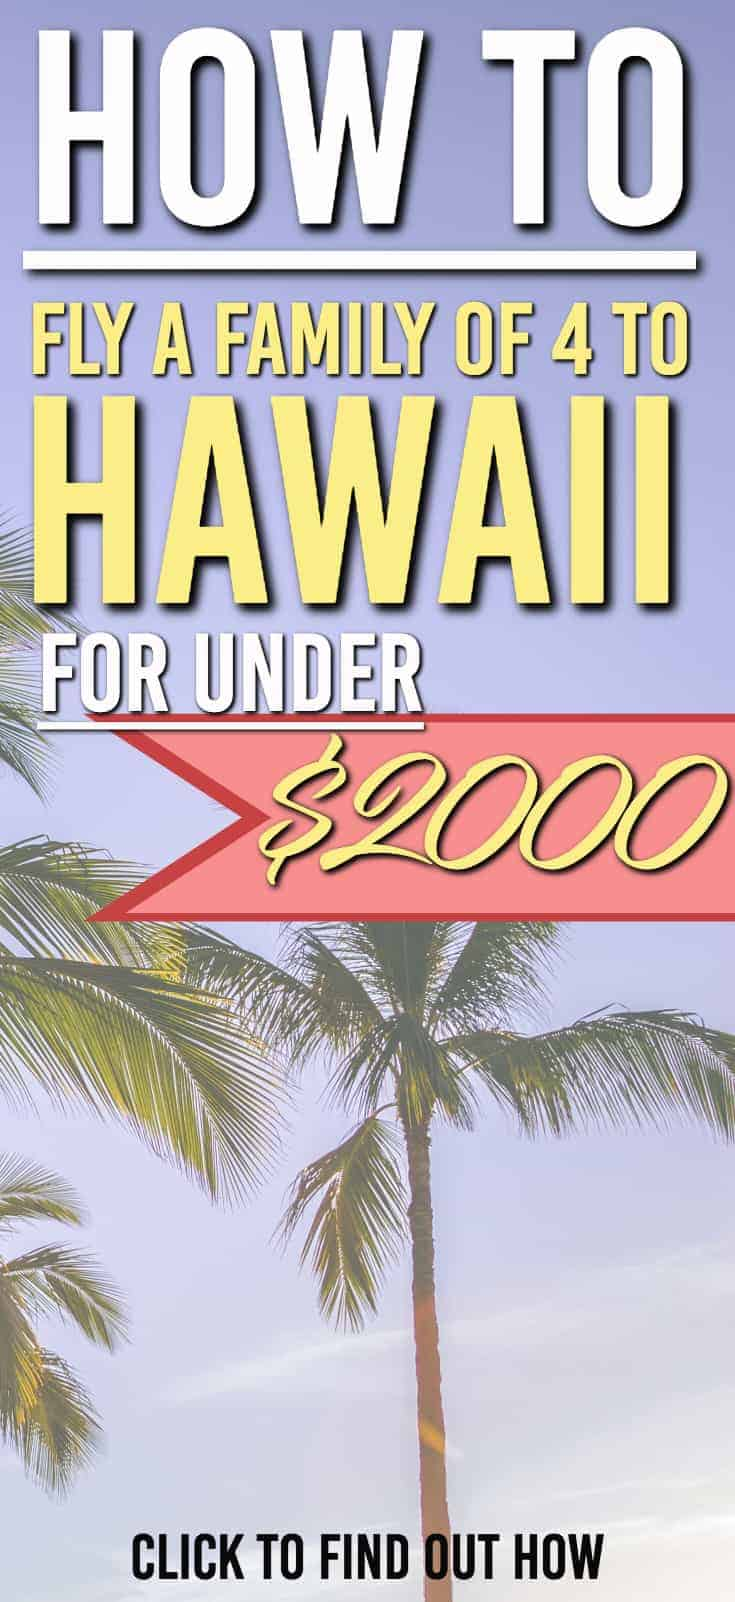 Wondering how you can afford to fly to Hawaii? Here's how we fly to Hhawaii for under $2000 for a family of 4 | Fly to Hawaii for less | Fly to Hawaii for Cheap | Family Travel | #hawaii #travelhacking #cheapflights #Maui #hawaii #family #familytravel #familyvacation